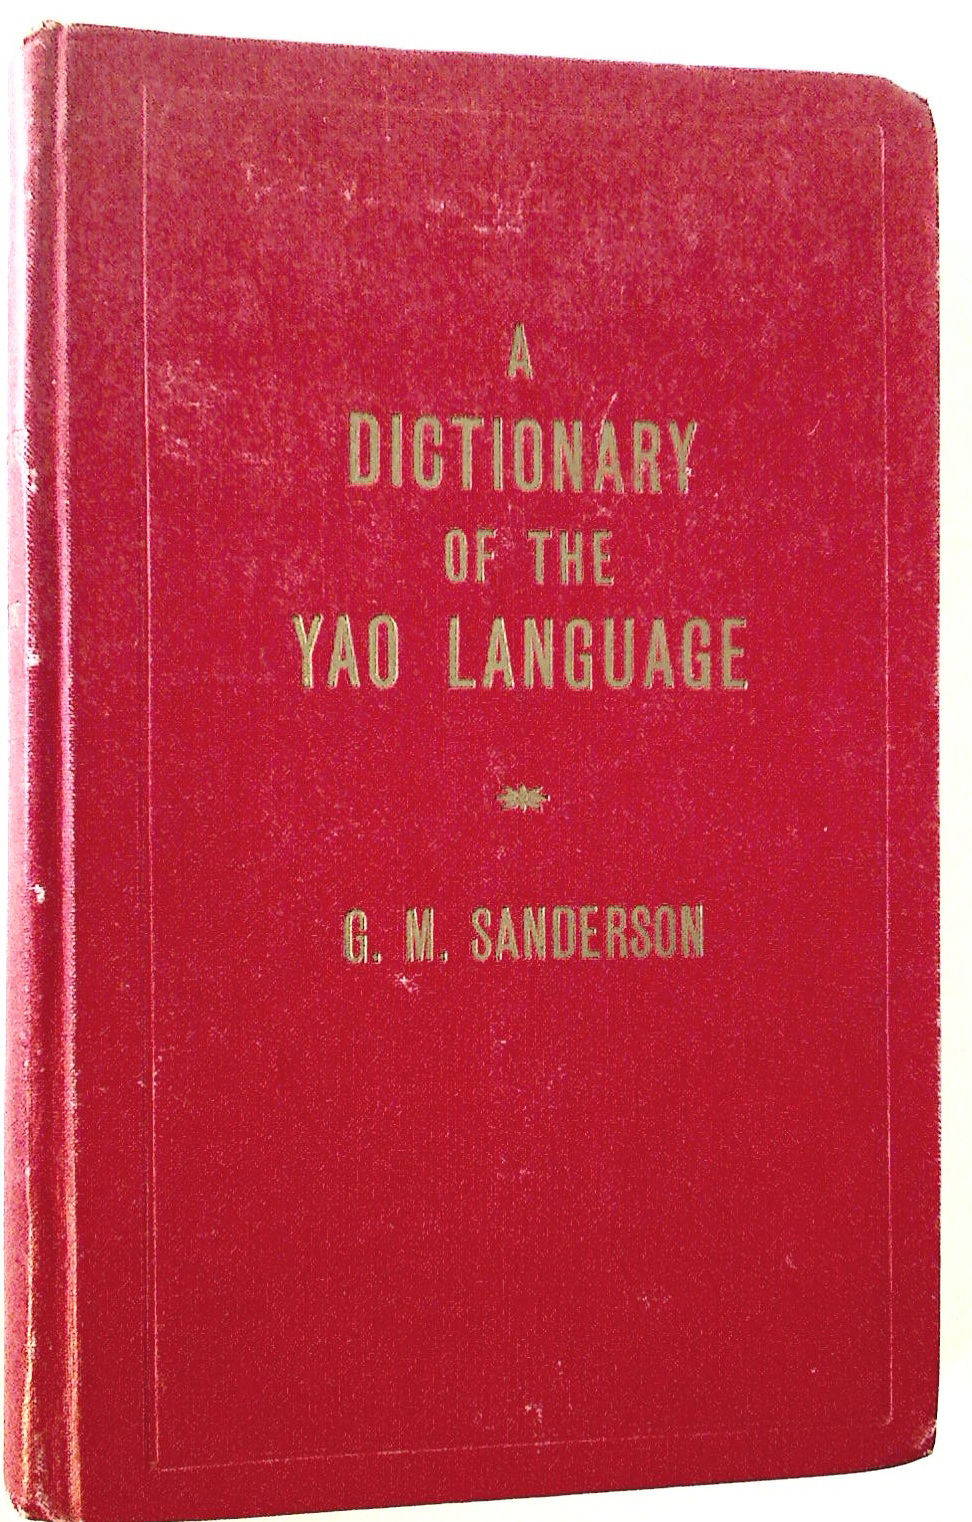 A Dictionay of the Yao Language.